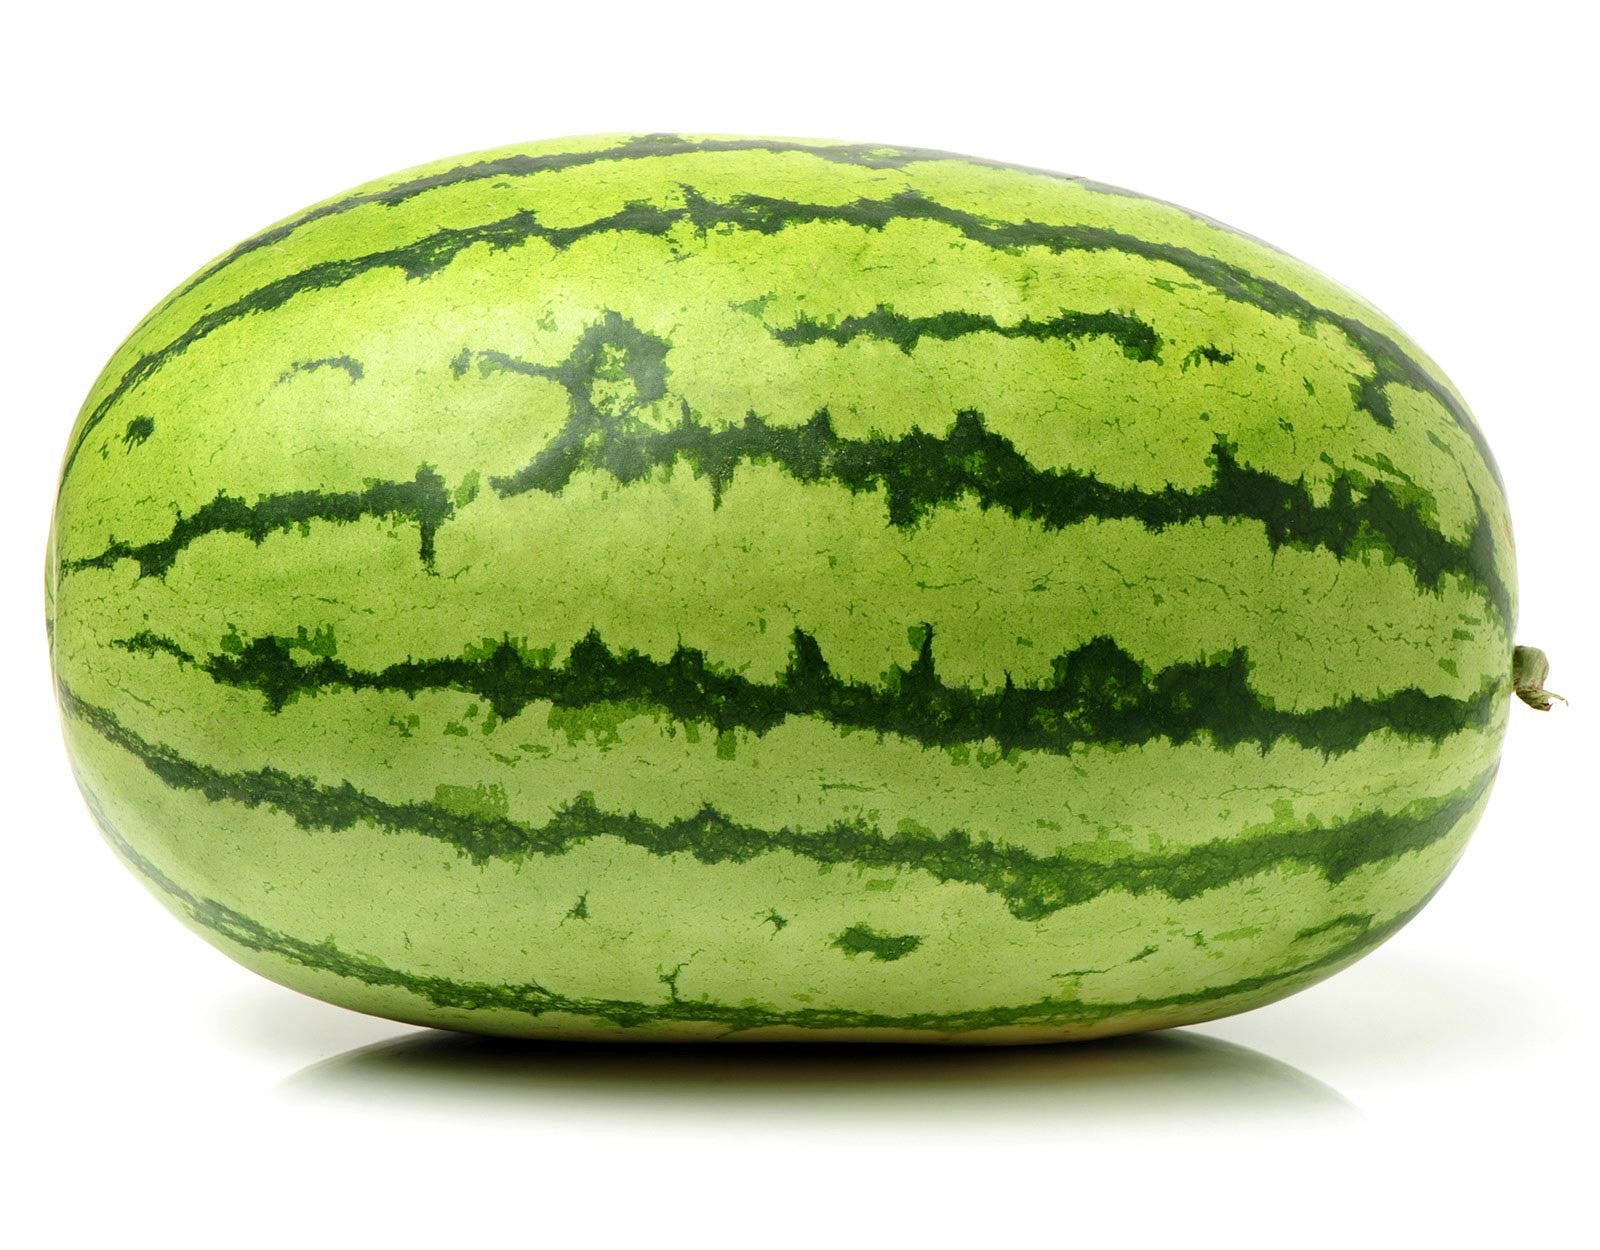 Seeds For Striped Oval Watermelon Shop Tarbooz Seeds Online